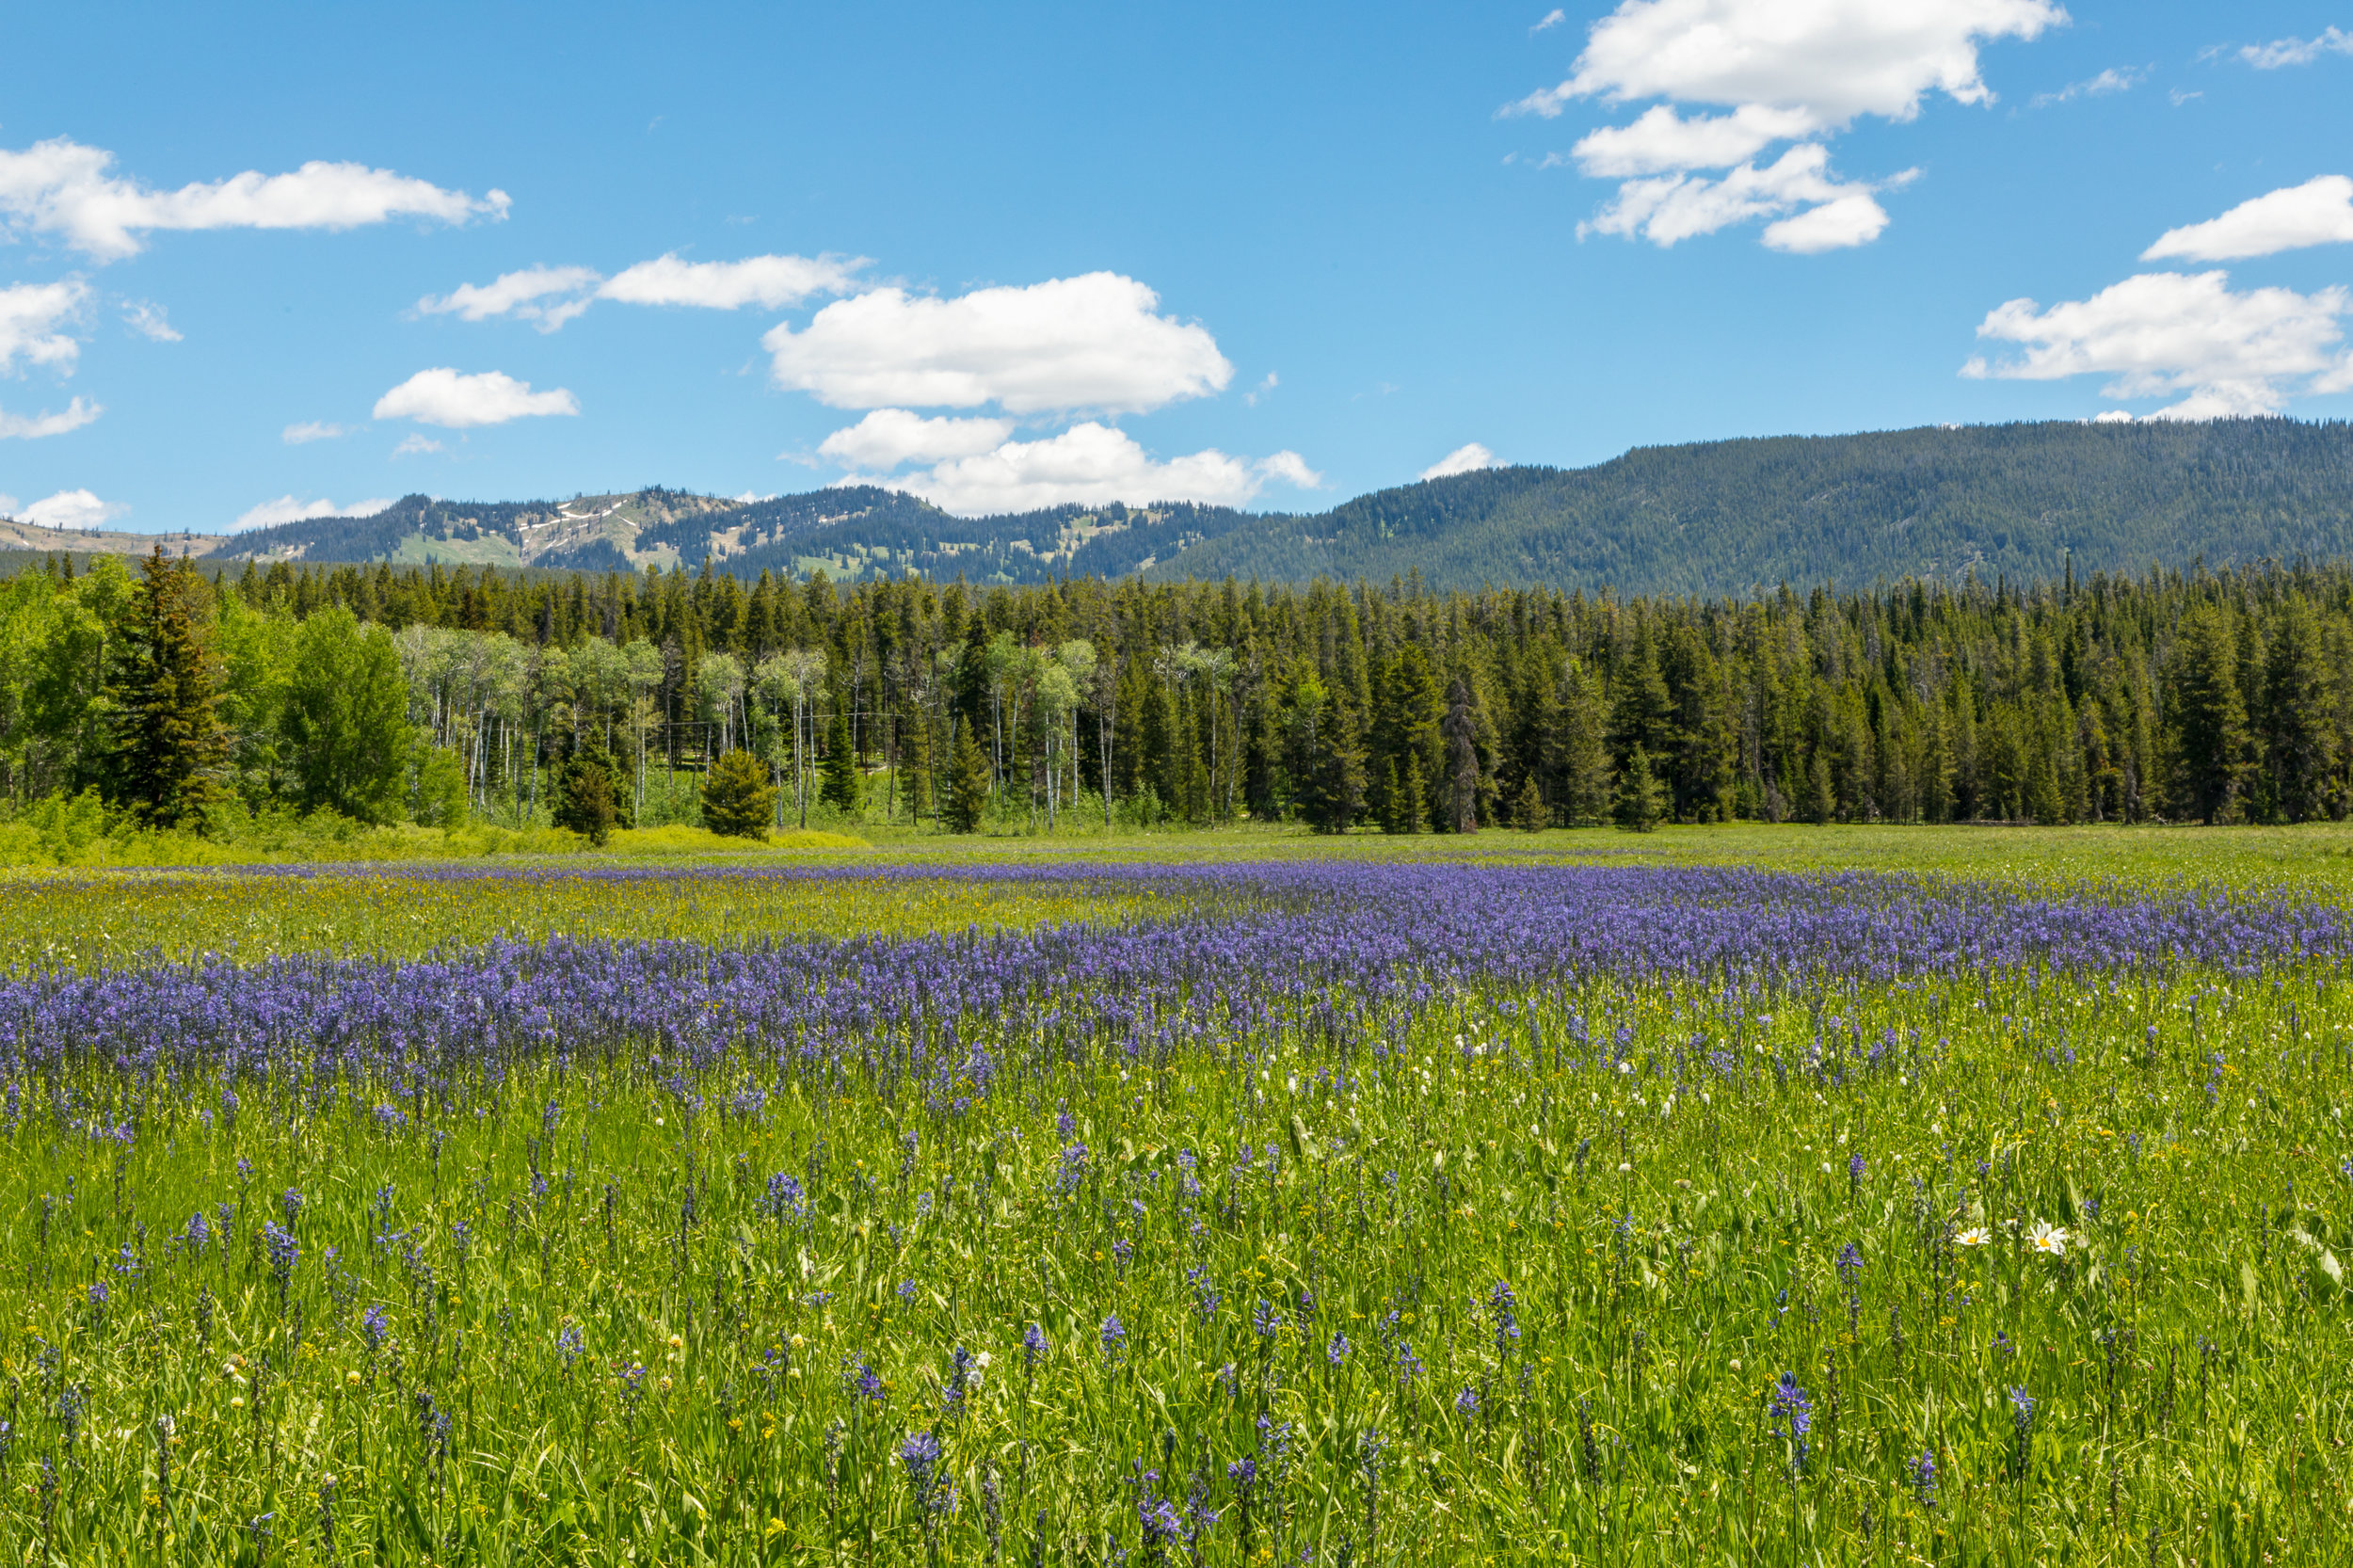 Wildflowe7872r Field in Grand Teton National Park, Image # 7861